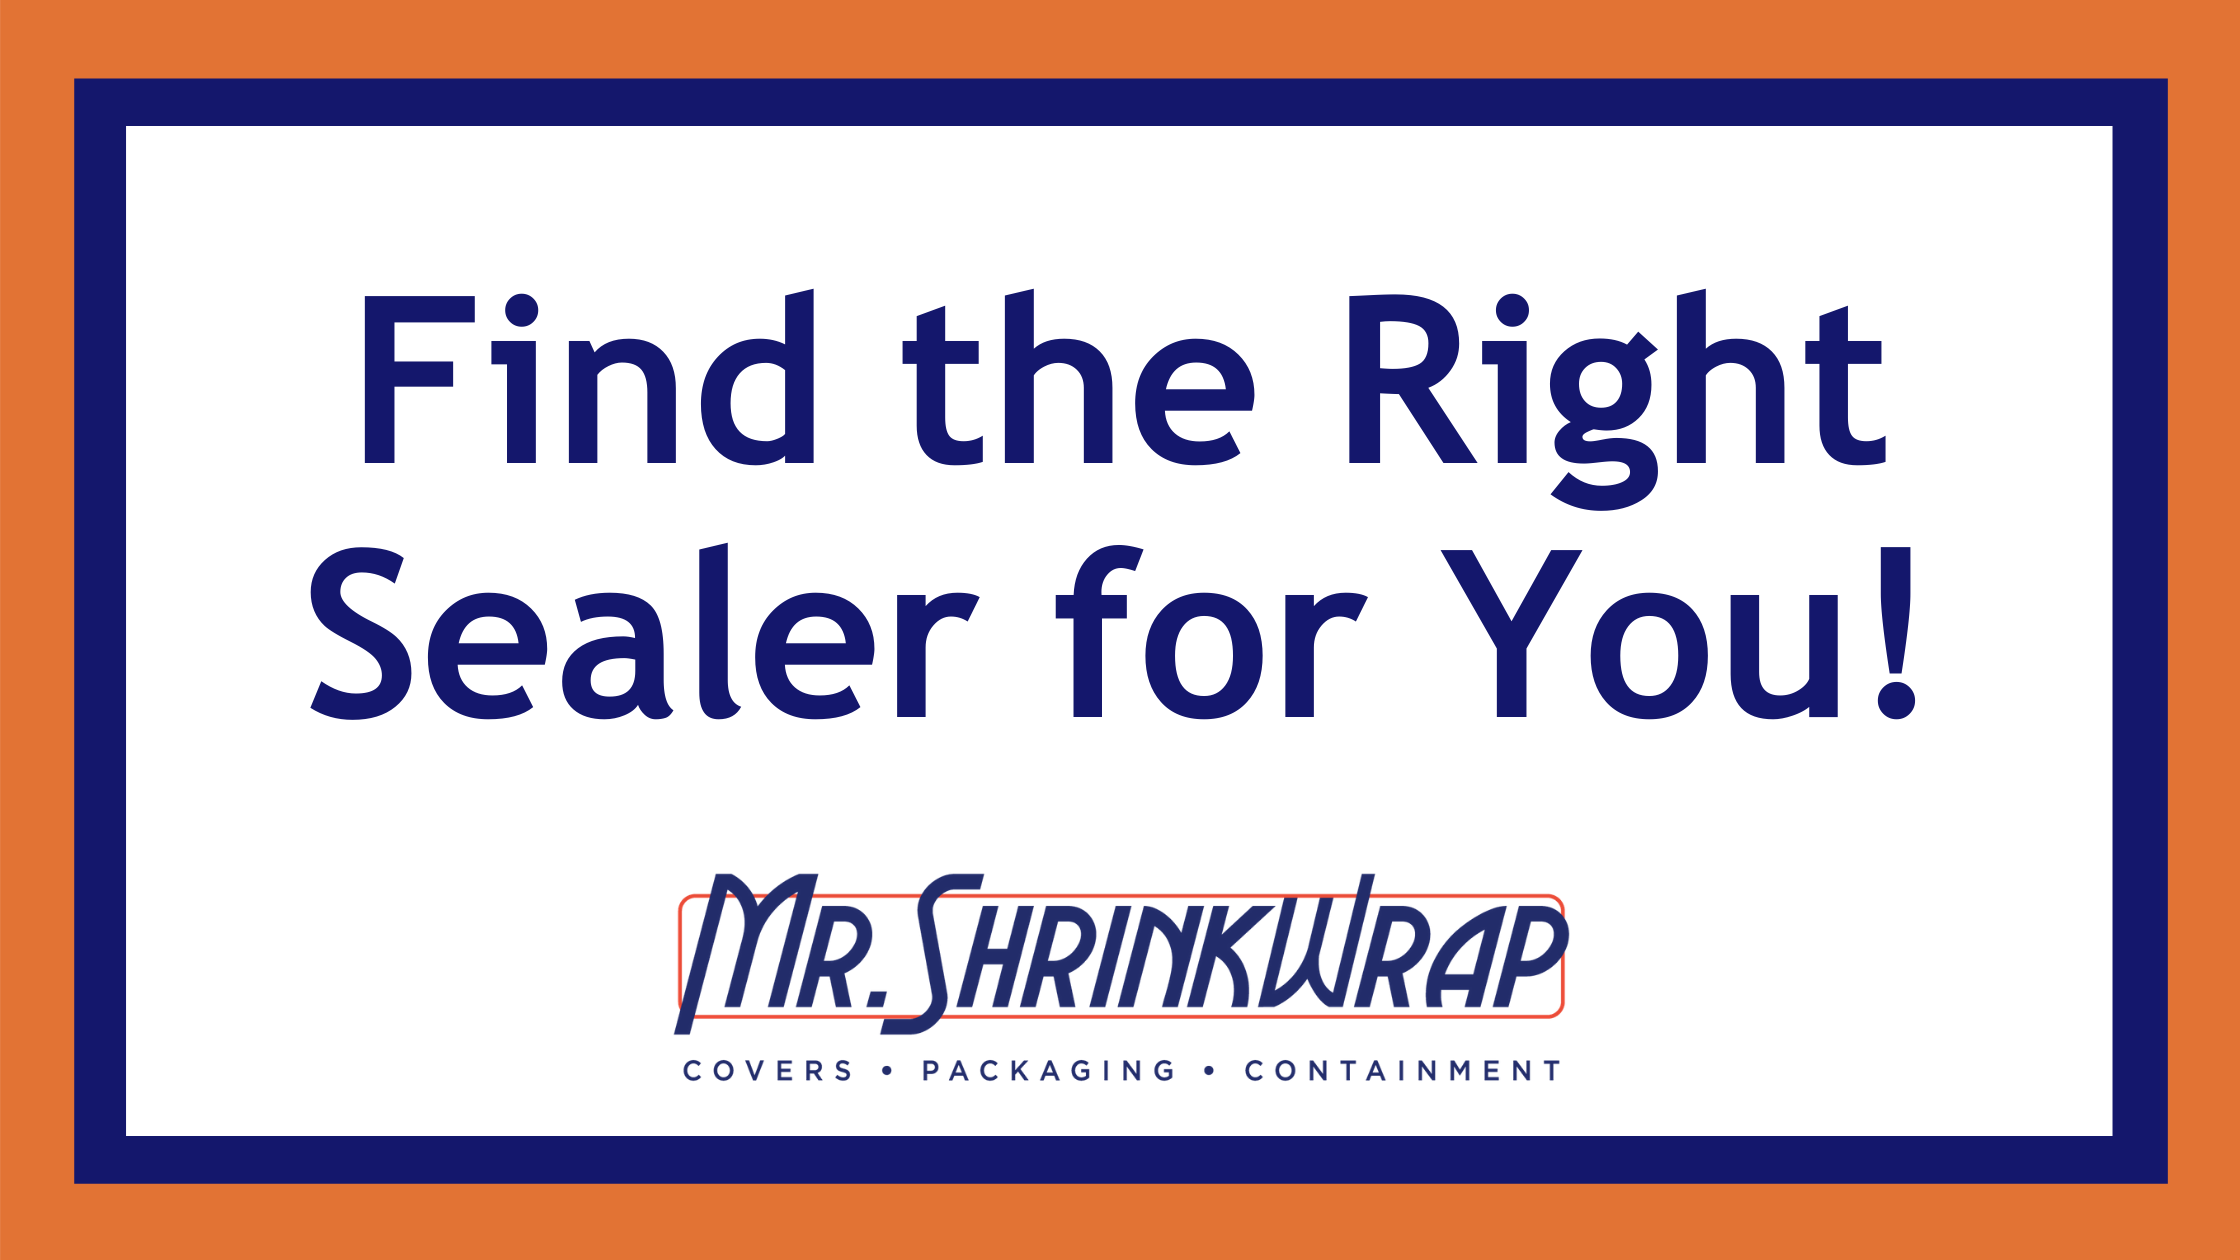 Find the Right Sealer for You!